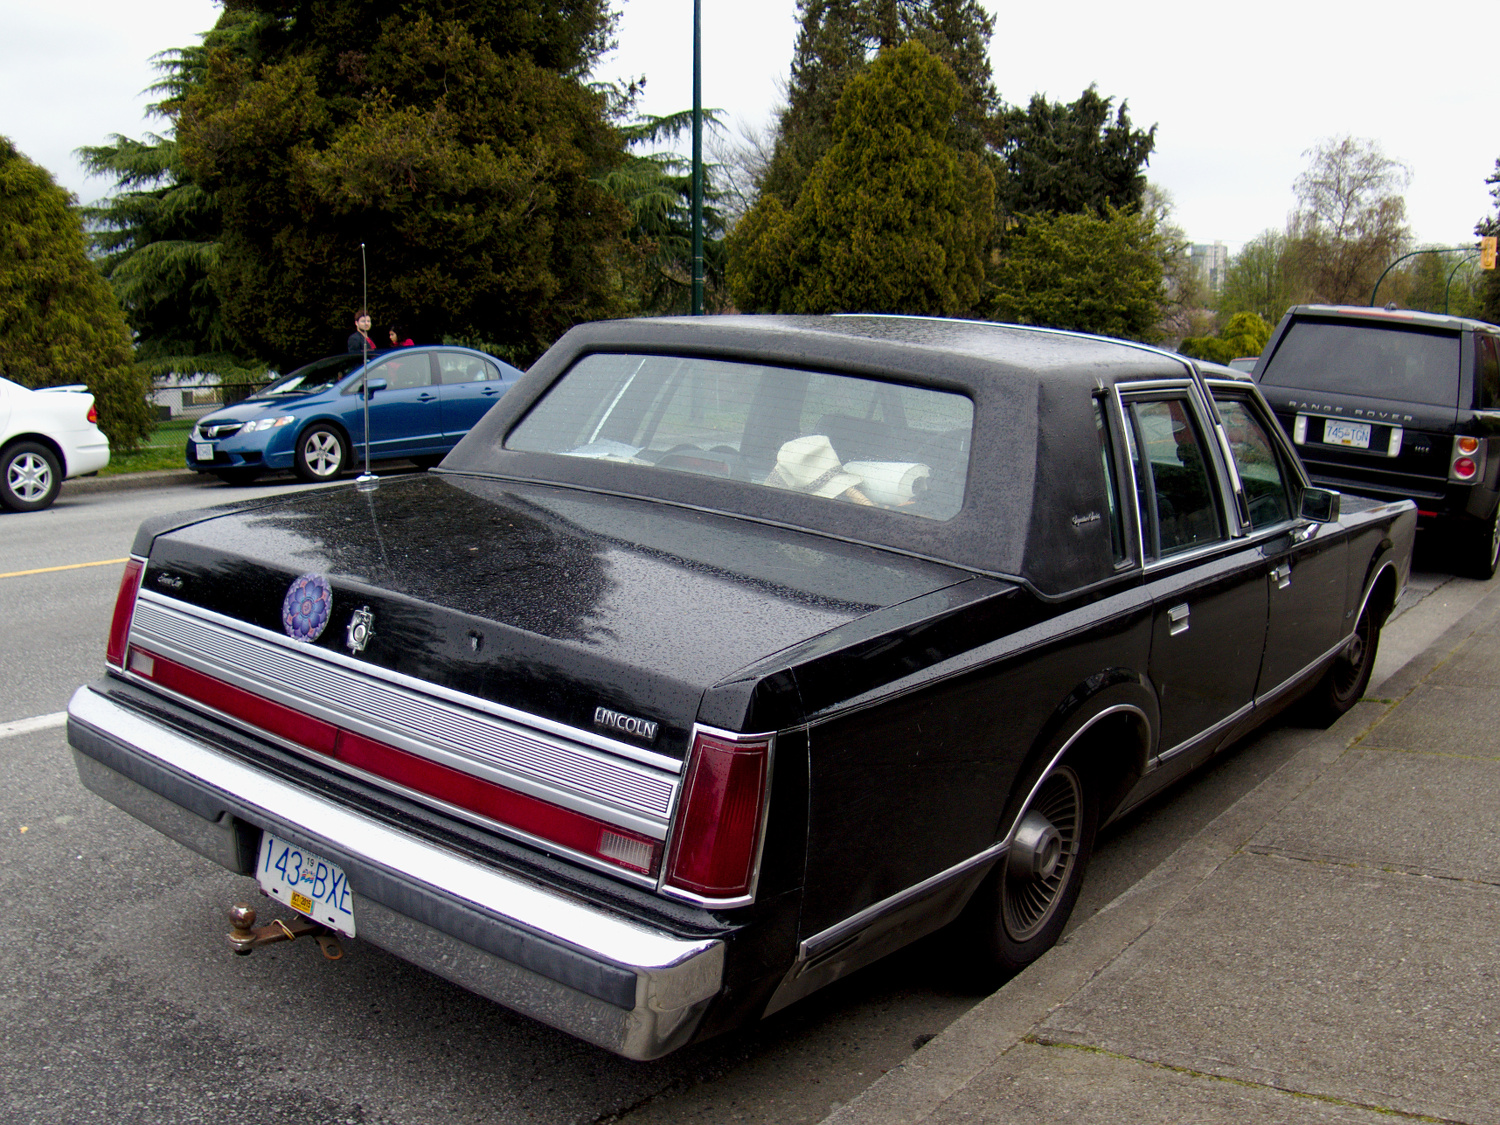 Old Parked Cars Vancouver: 1988 Lincoln Town Car  Old Parked Cars...